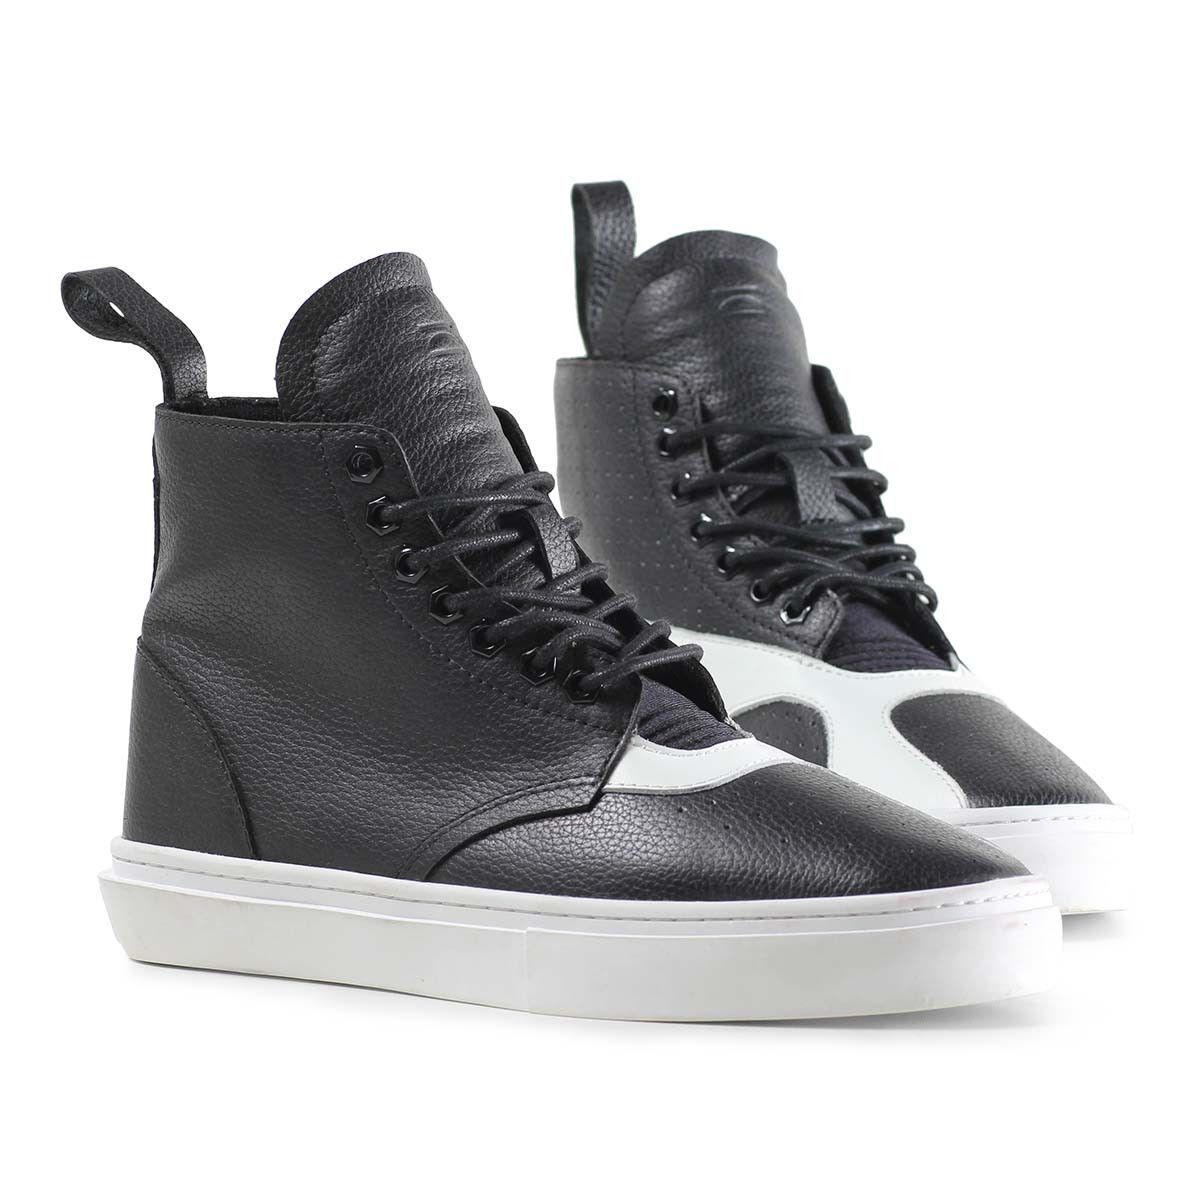 FOOTWEAR - High-tops & sneakers Clear Weather Discount Pay With Visa Cheap Sale Best Pick A Best Online Buy Cheap Fashion Style Prices Cheap Online 448Xx6wkNZ